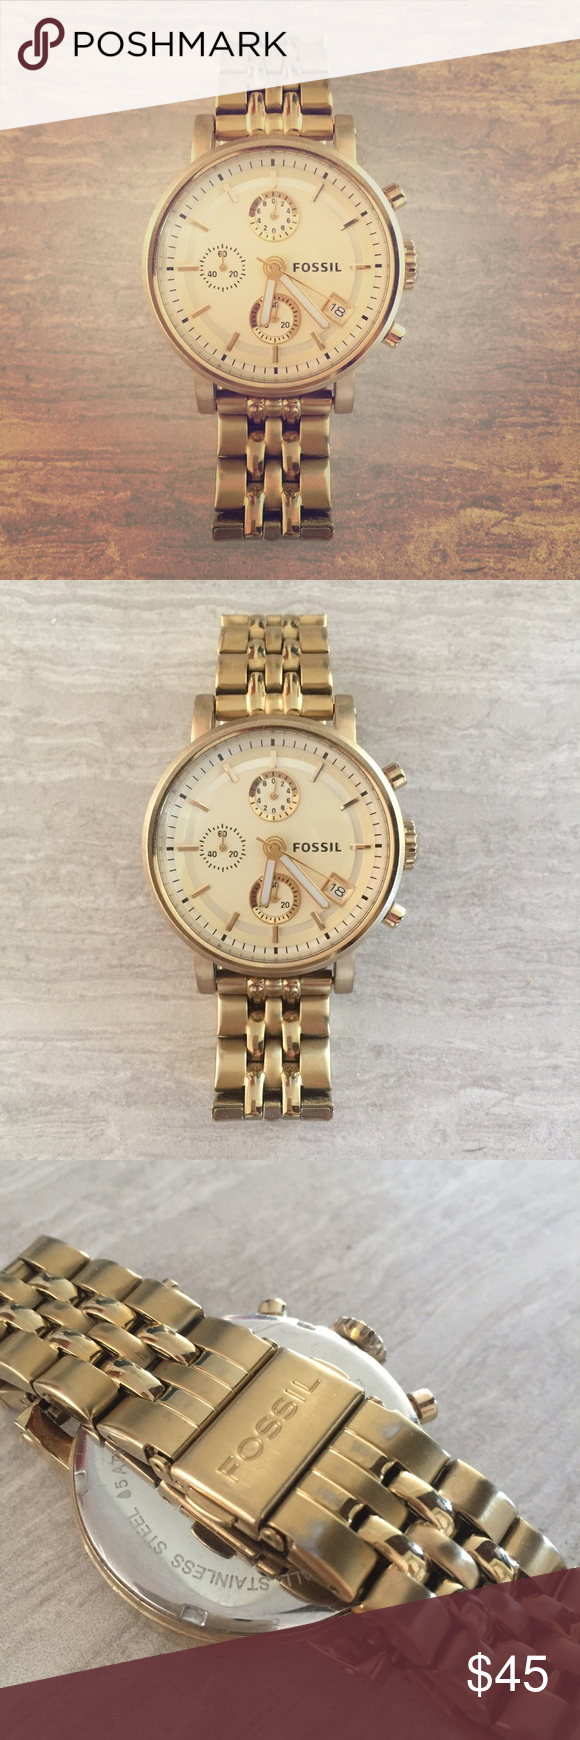 Fossil gold boyfriend watch Fossil gold boyfriend watch, in perfect working condition does show some slight wear on the back of the band please see pictures. Fossil Other